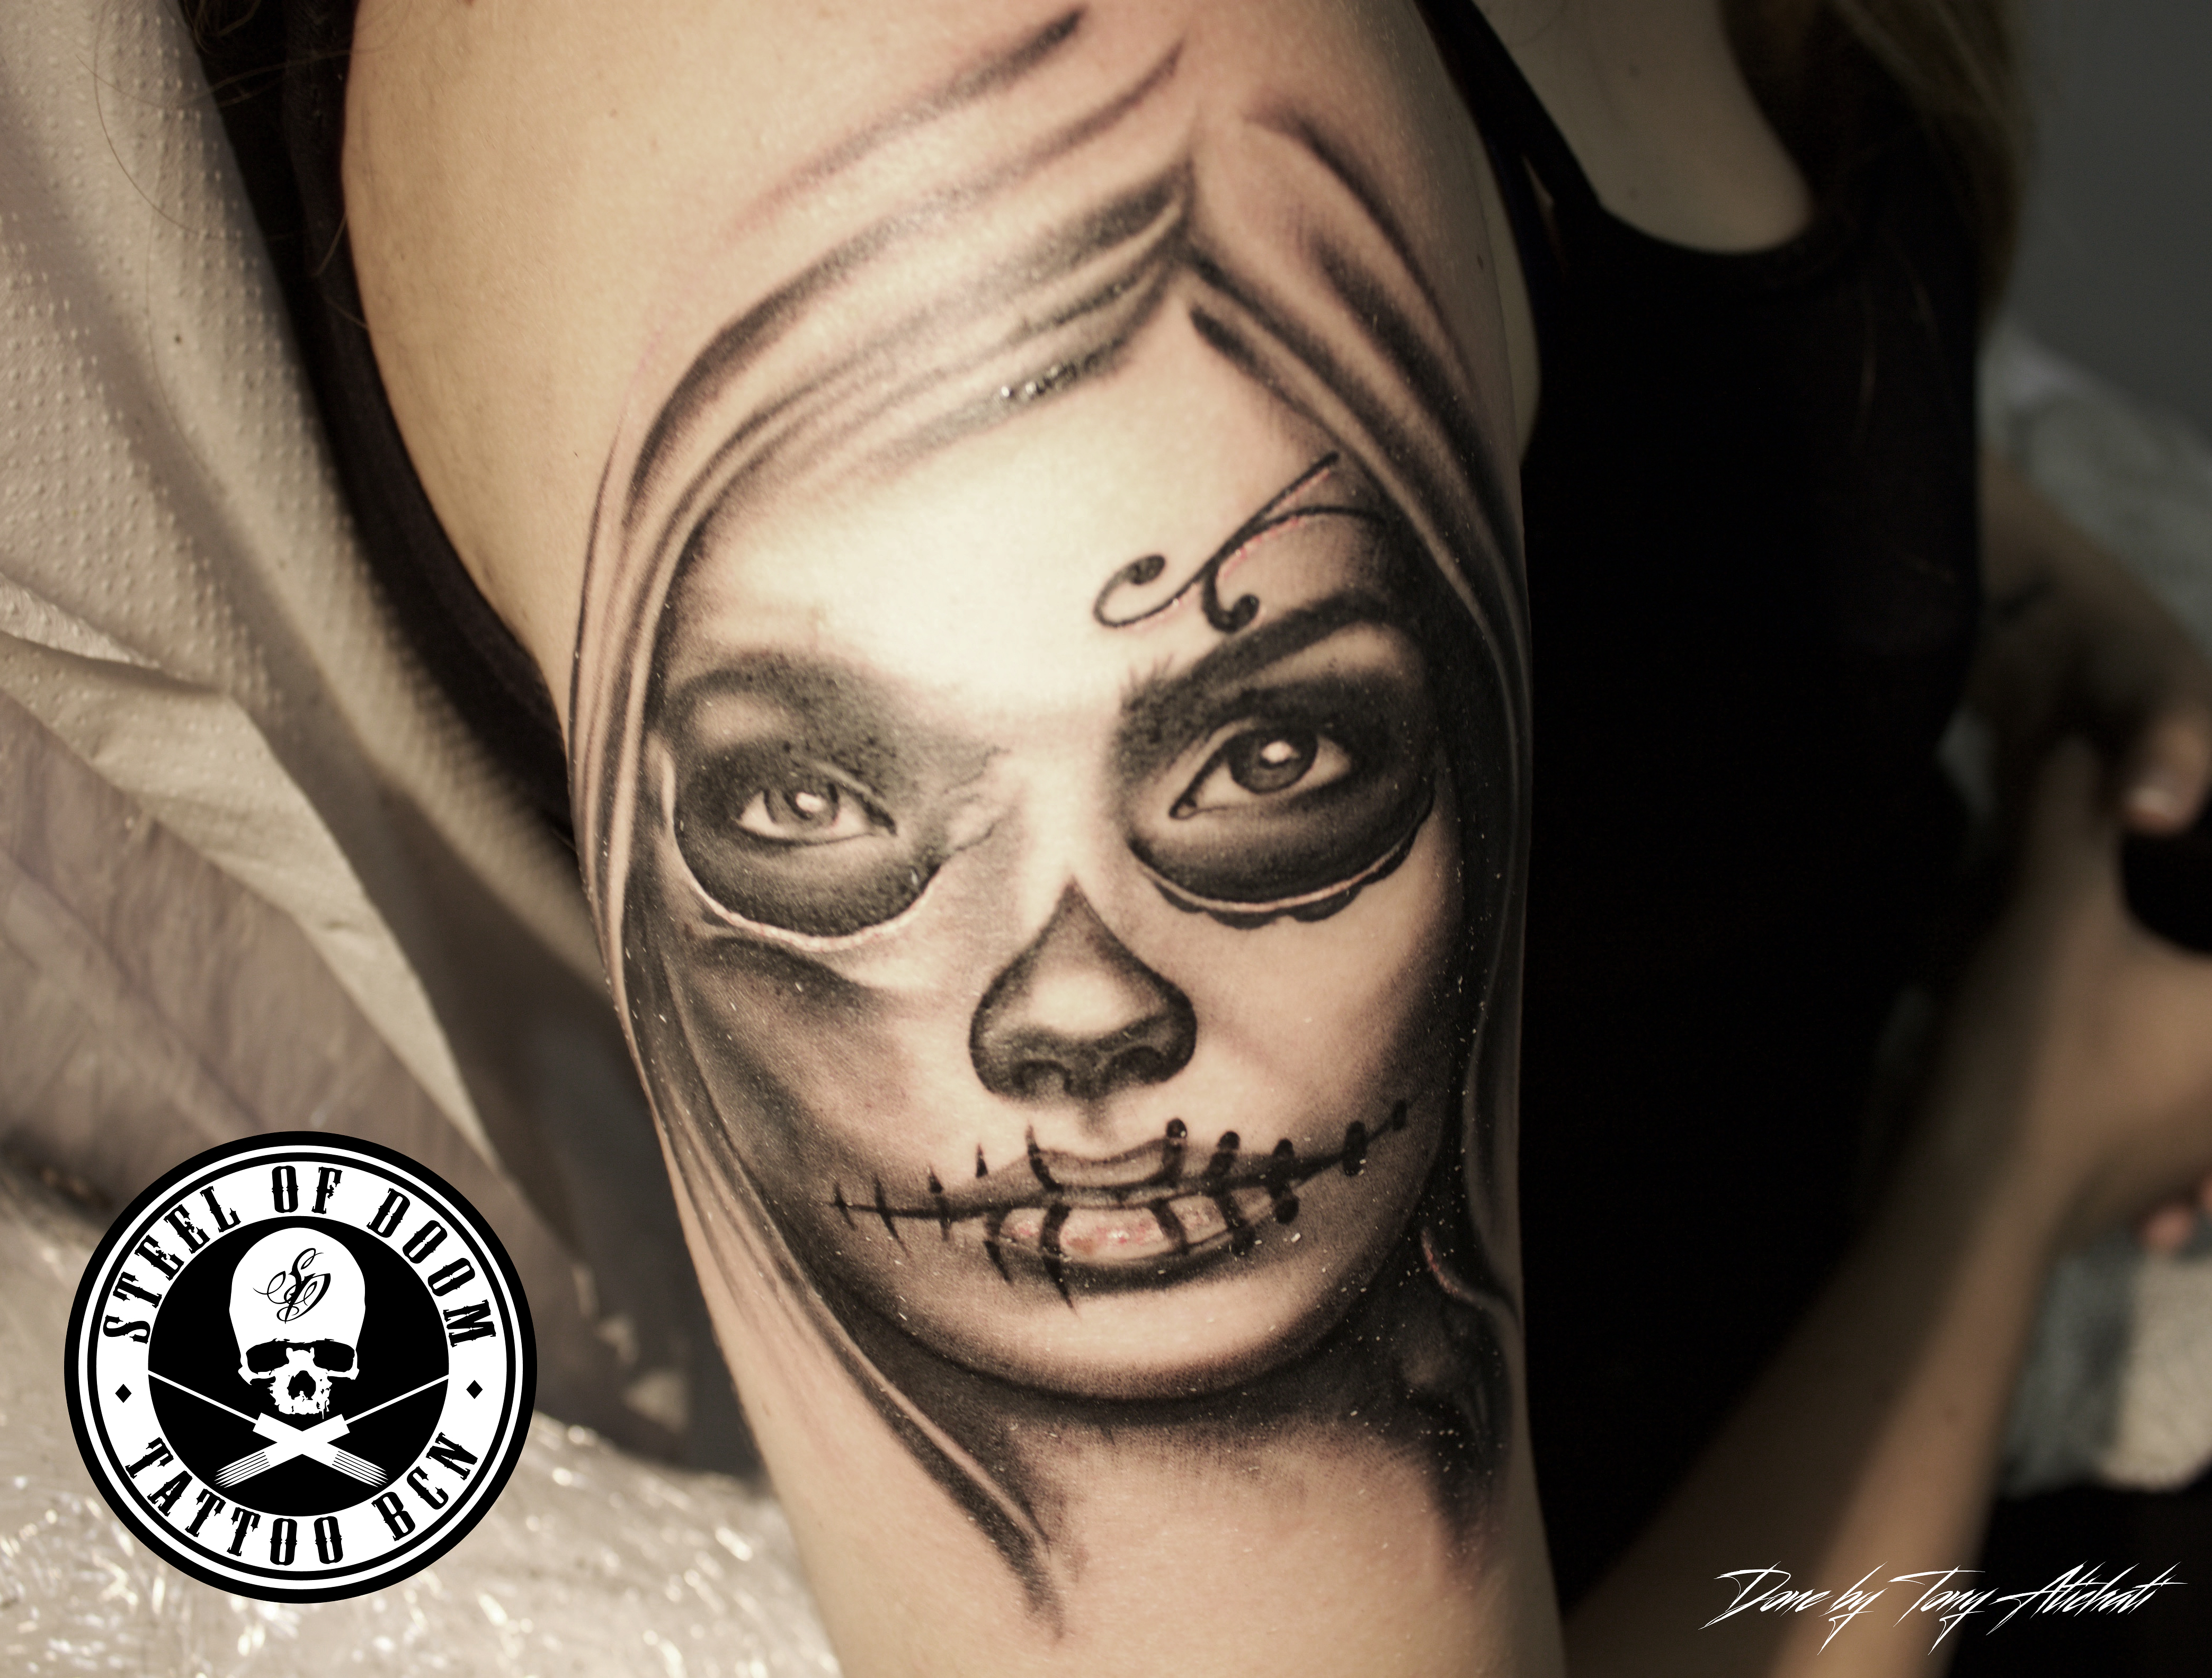 Tattoo De Realismo En Barcelona Steel Of Doom